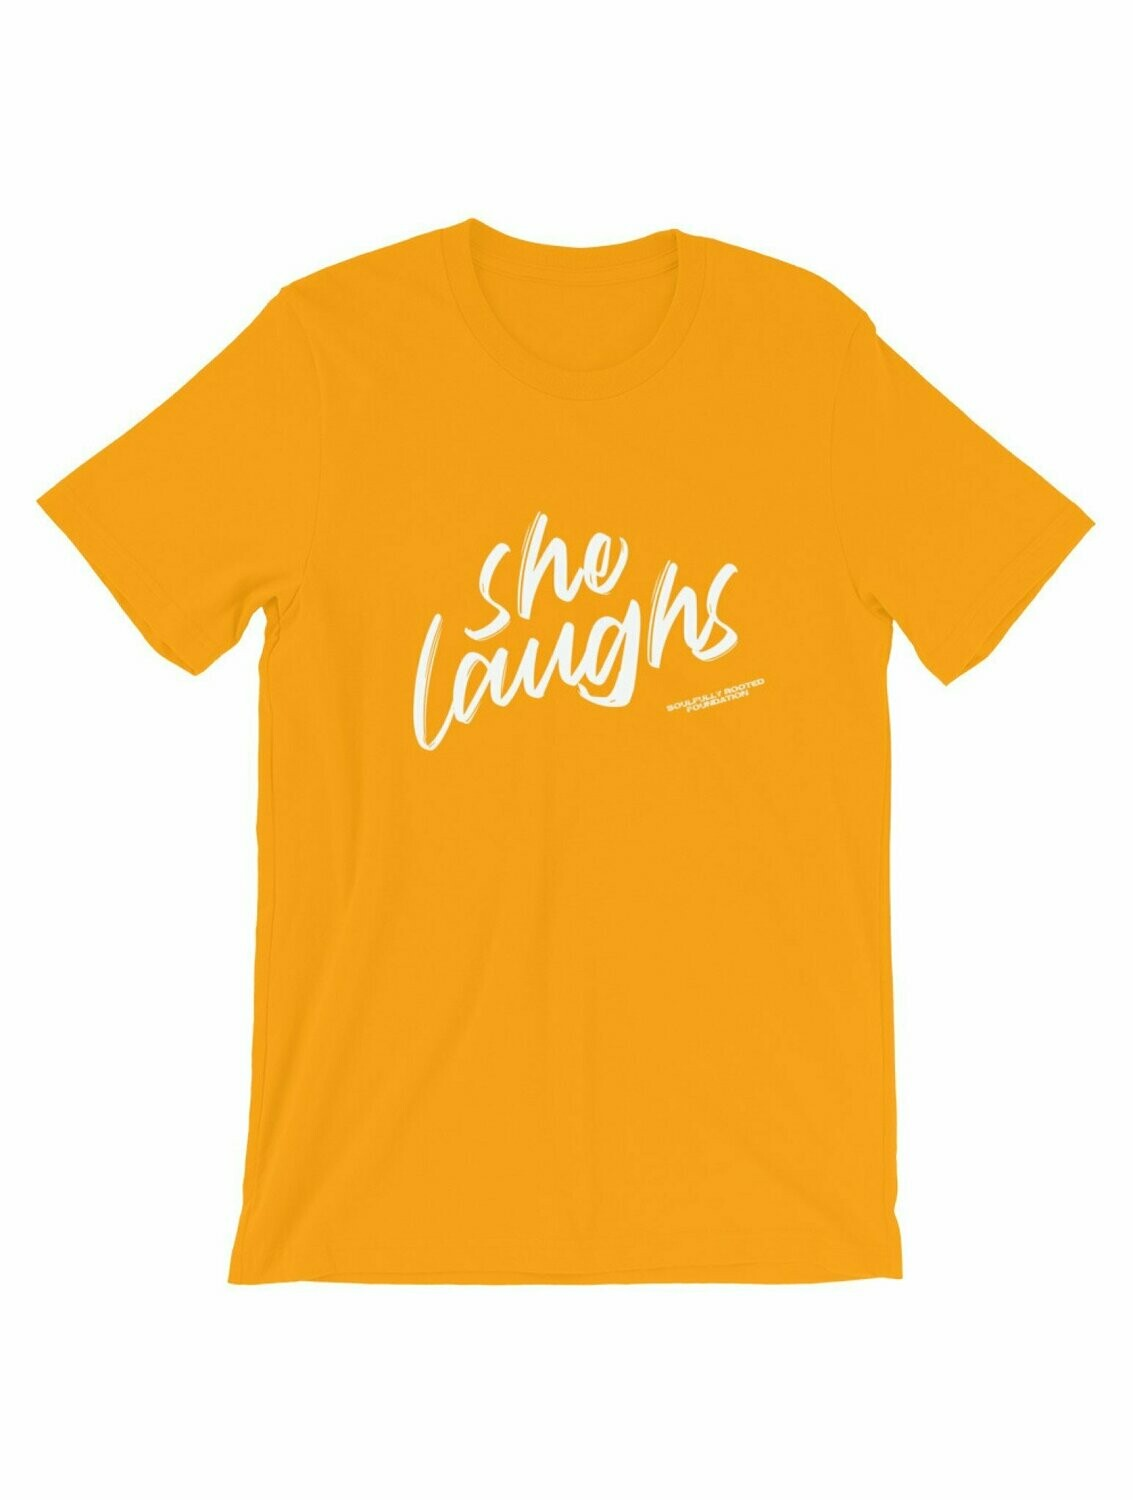 She Laughs Tee